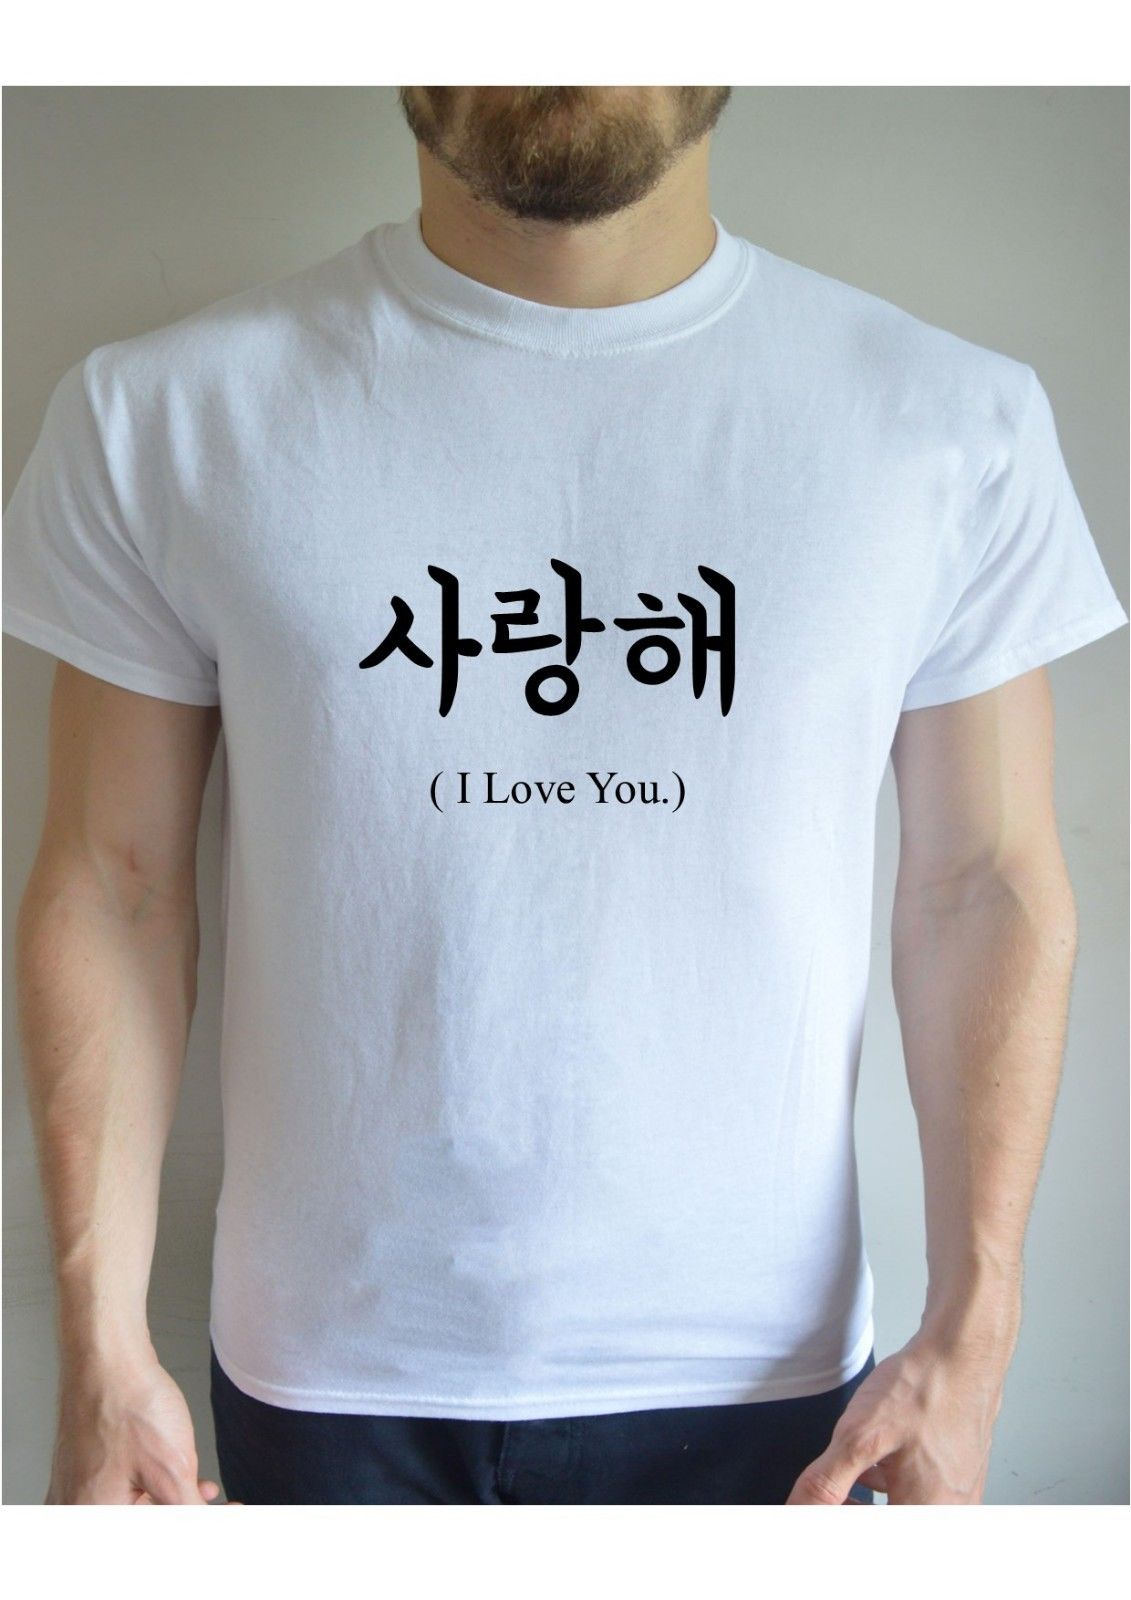 2e154a6f0d I LOVE YOU Korean Printed T Shirt Top Tee Fashion Korea K pop K drama Men